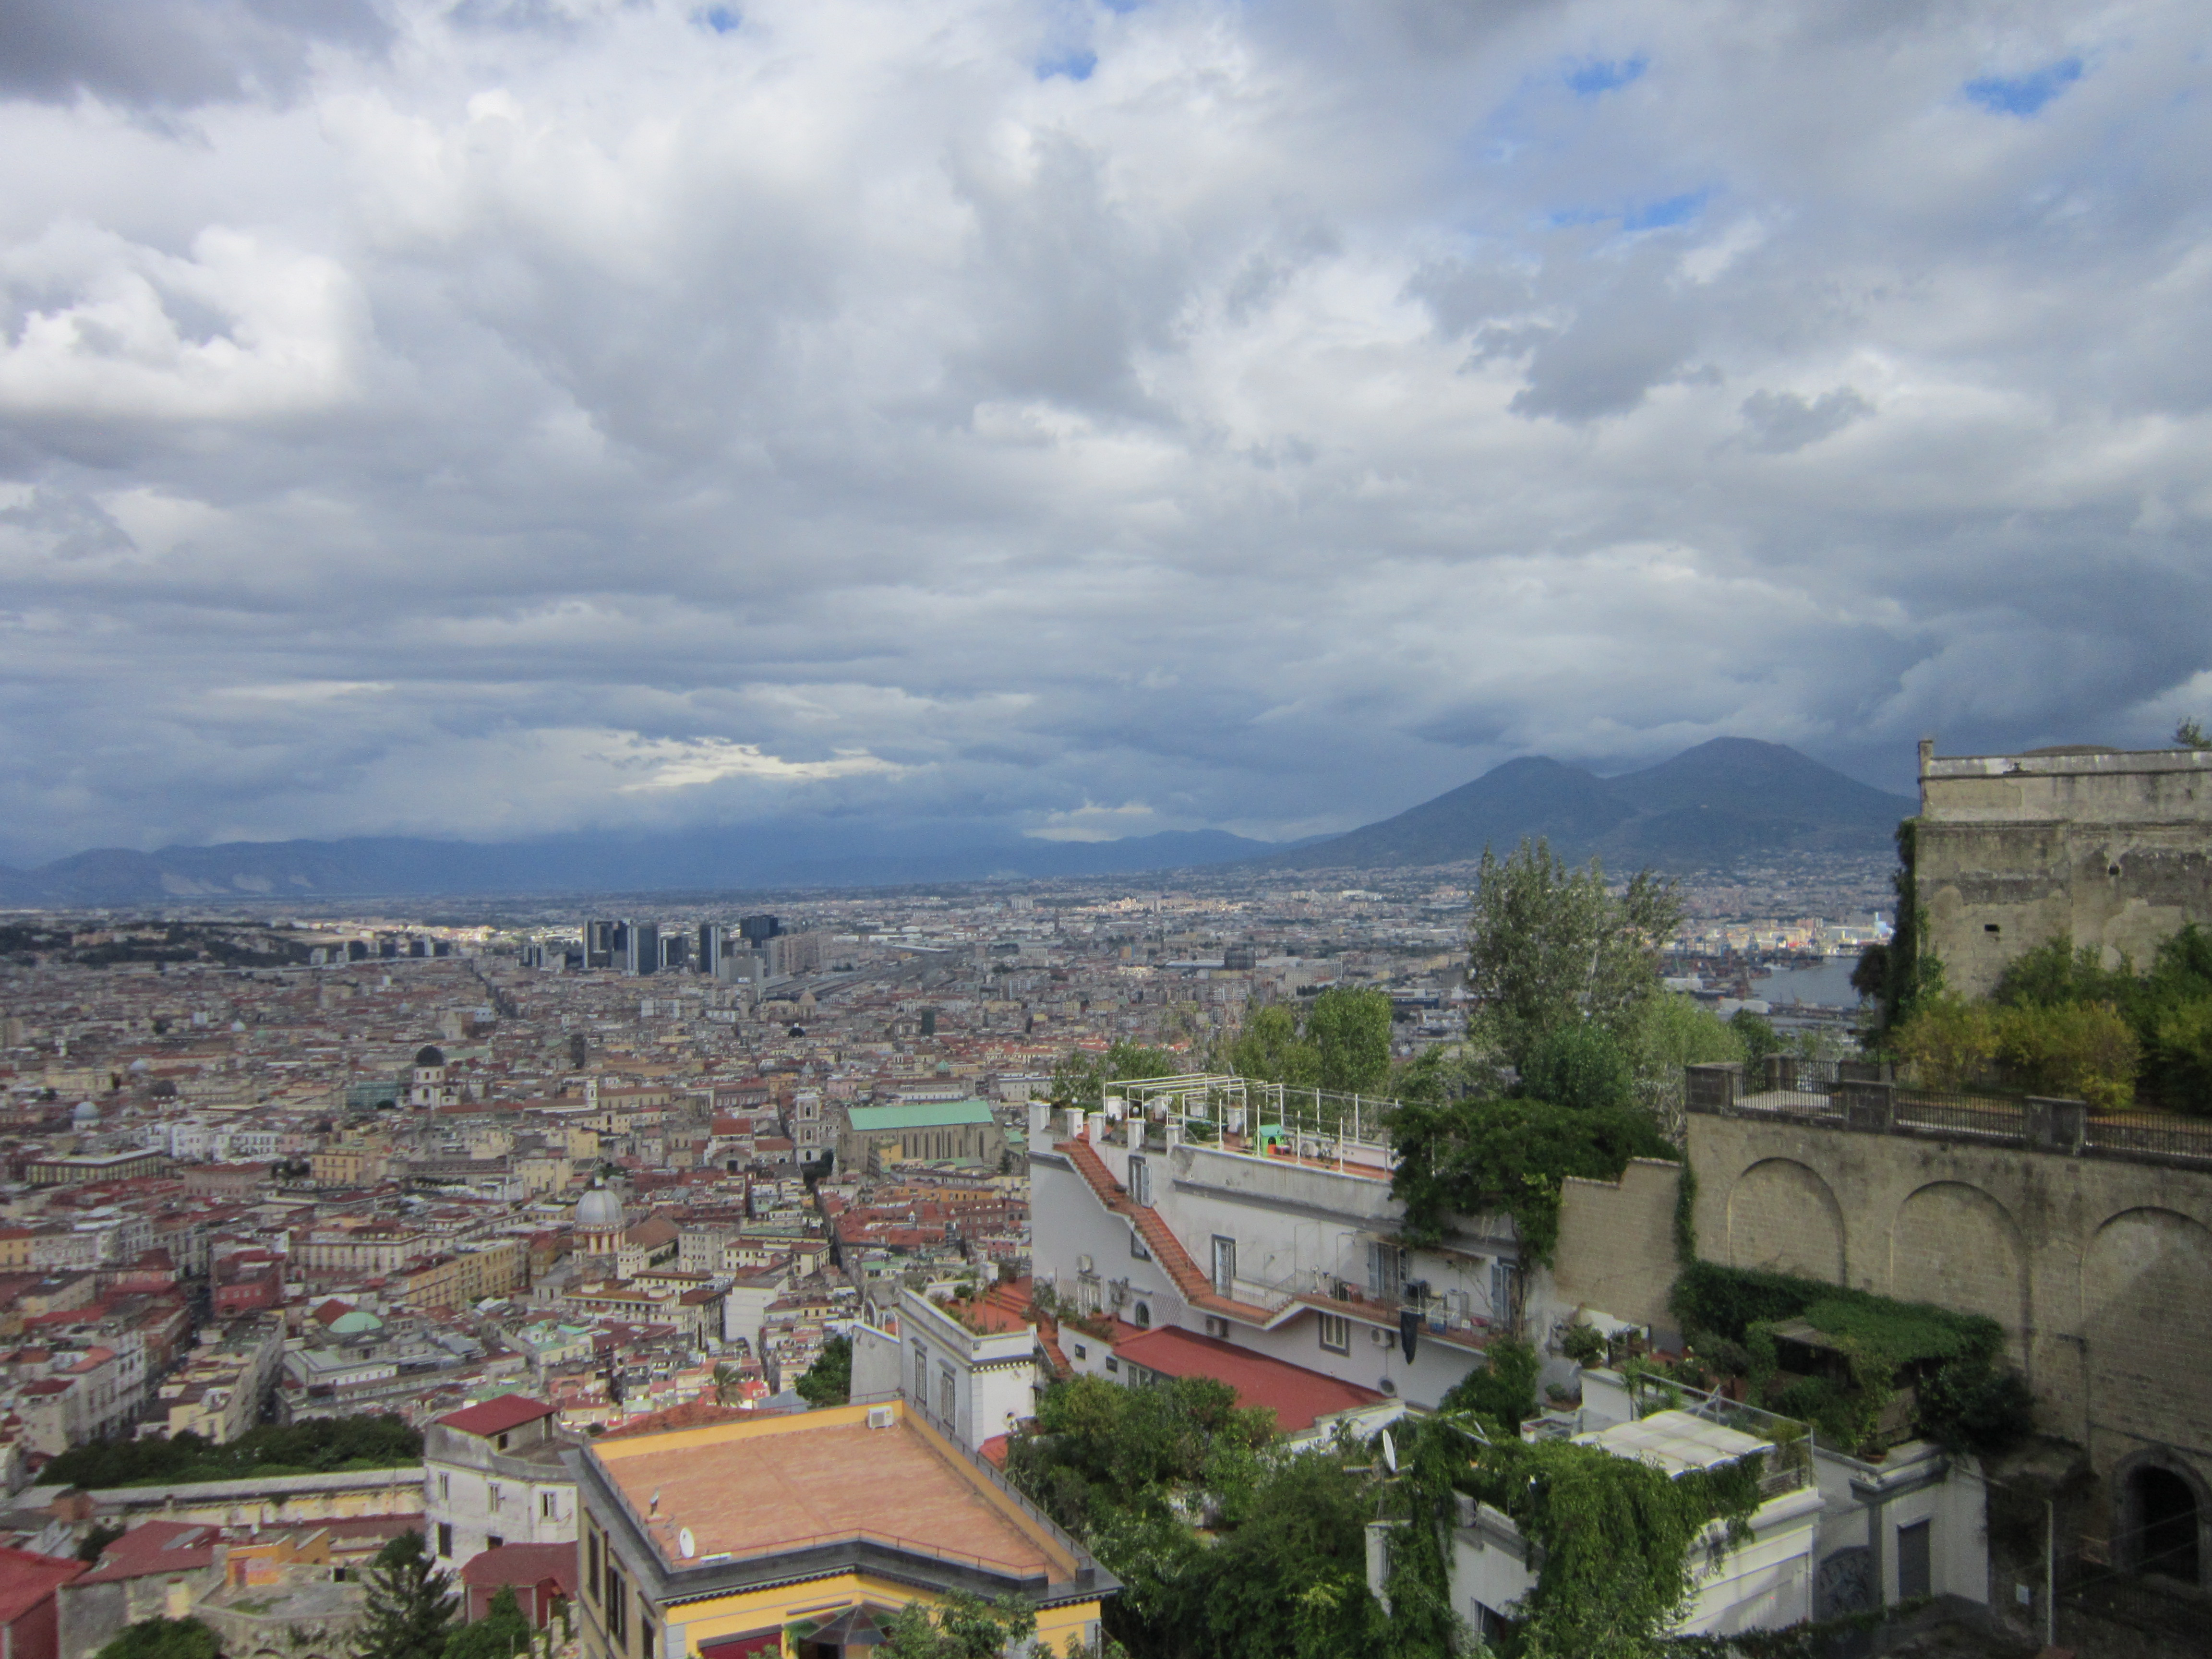 A view across the city of Napoli, with a cloudy sky and the Mount Vesuvius volcano in the bacground